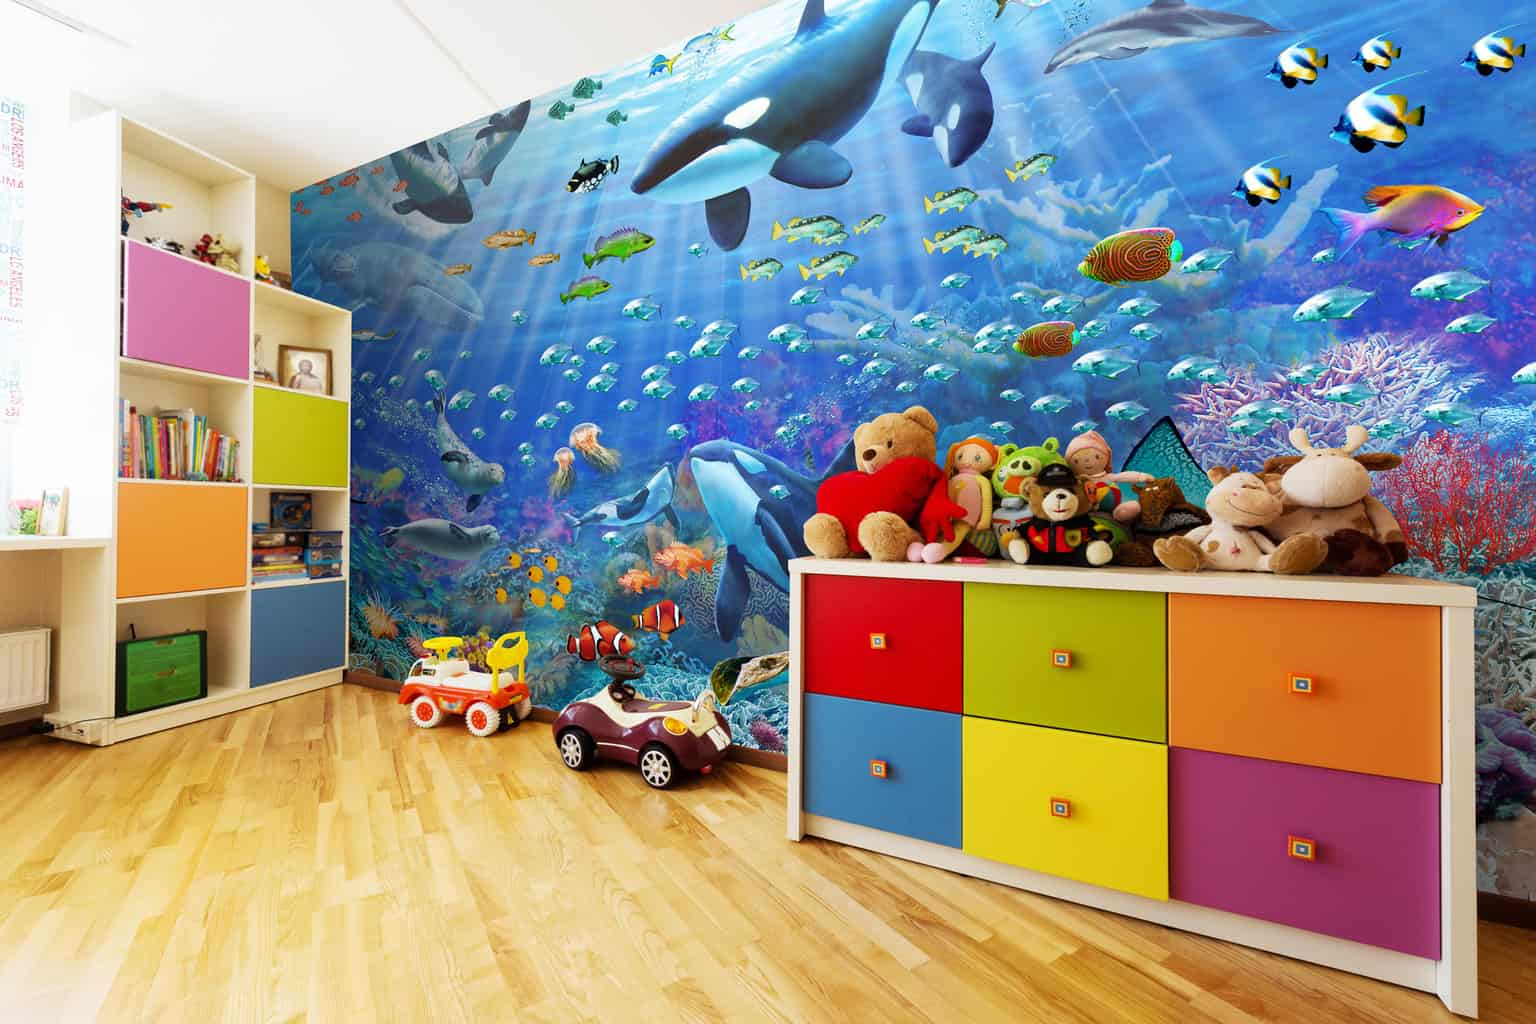 5 Wonderful Children's Wall Murals To Teach Them About The